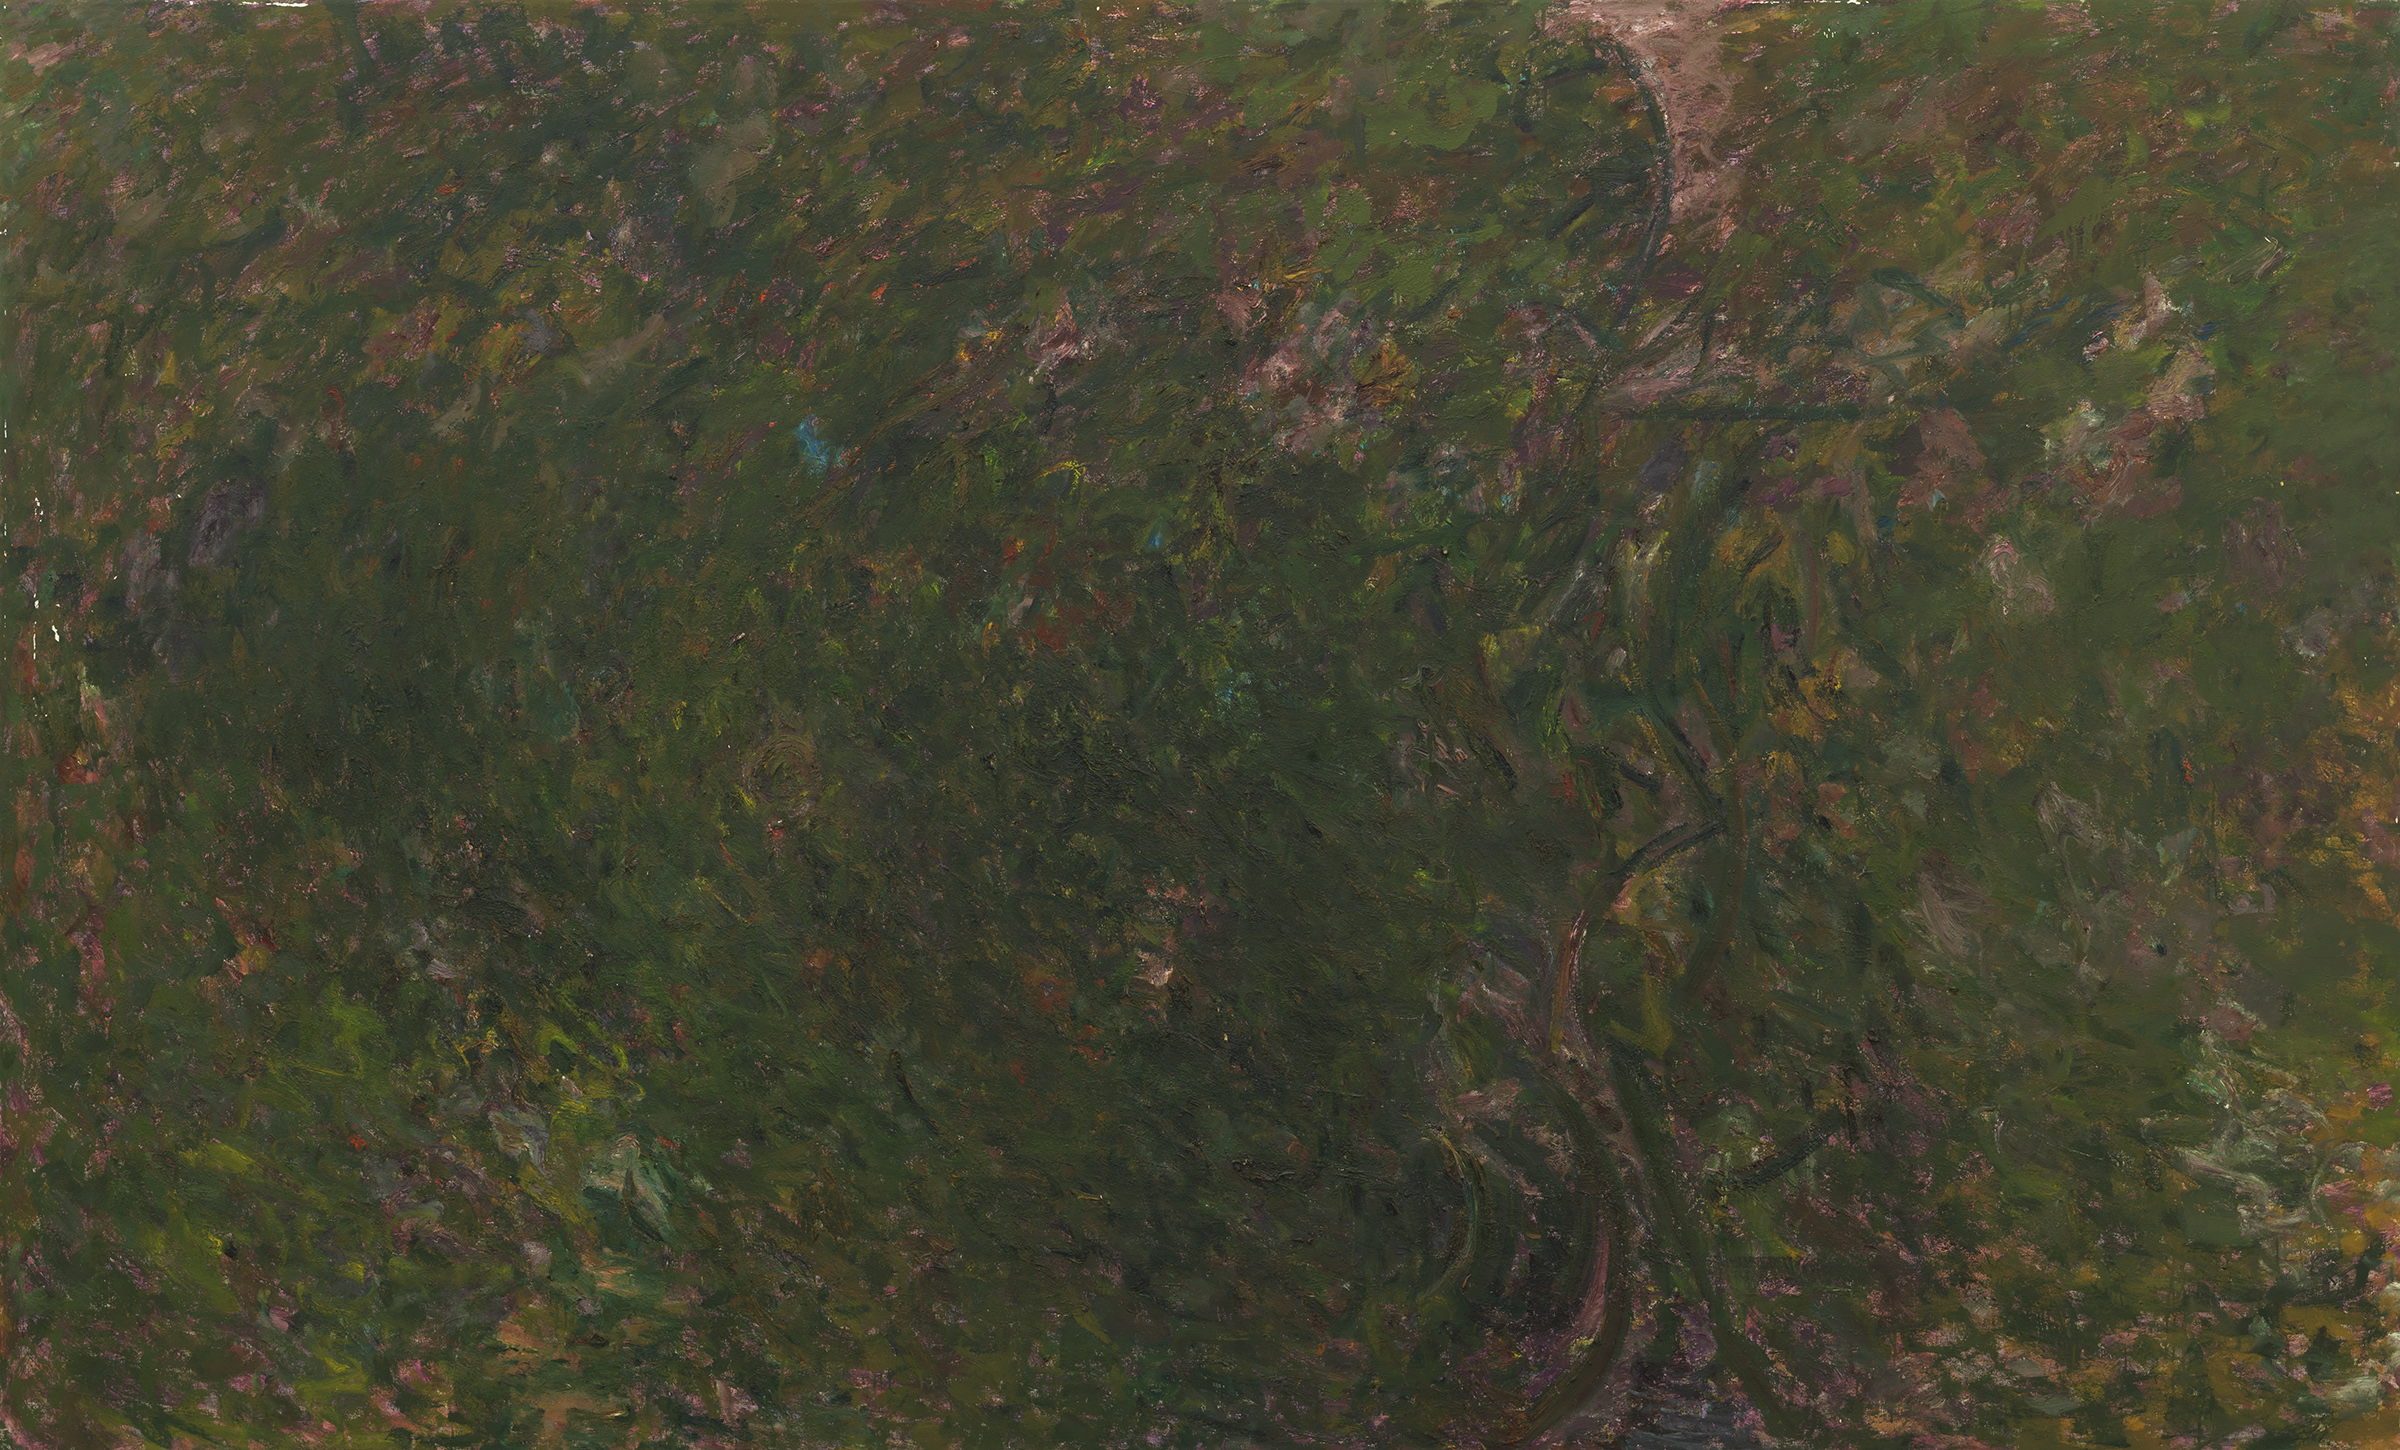 Pat Passlof  Keeping Still Mountain , 1971-72 Oil on linen 80 x 132 inches